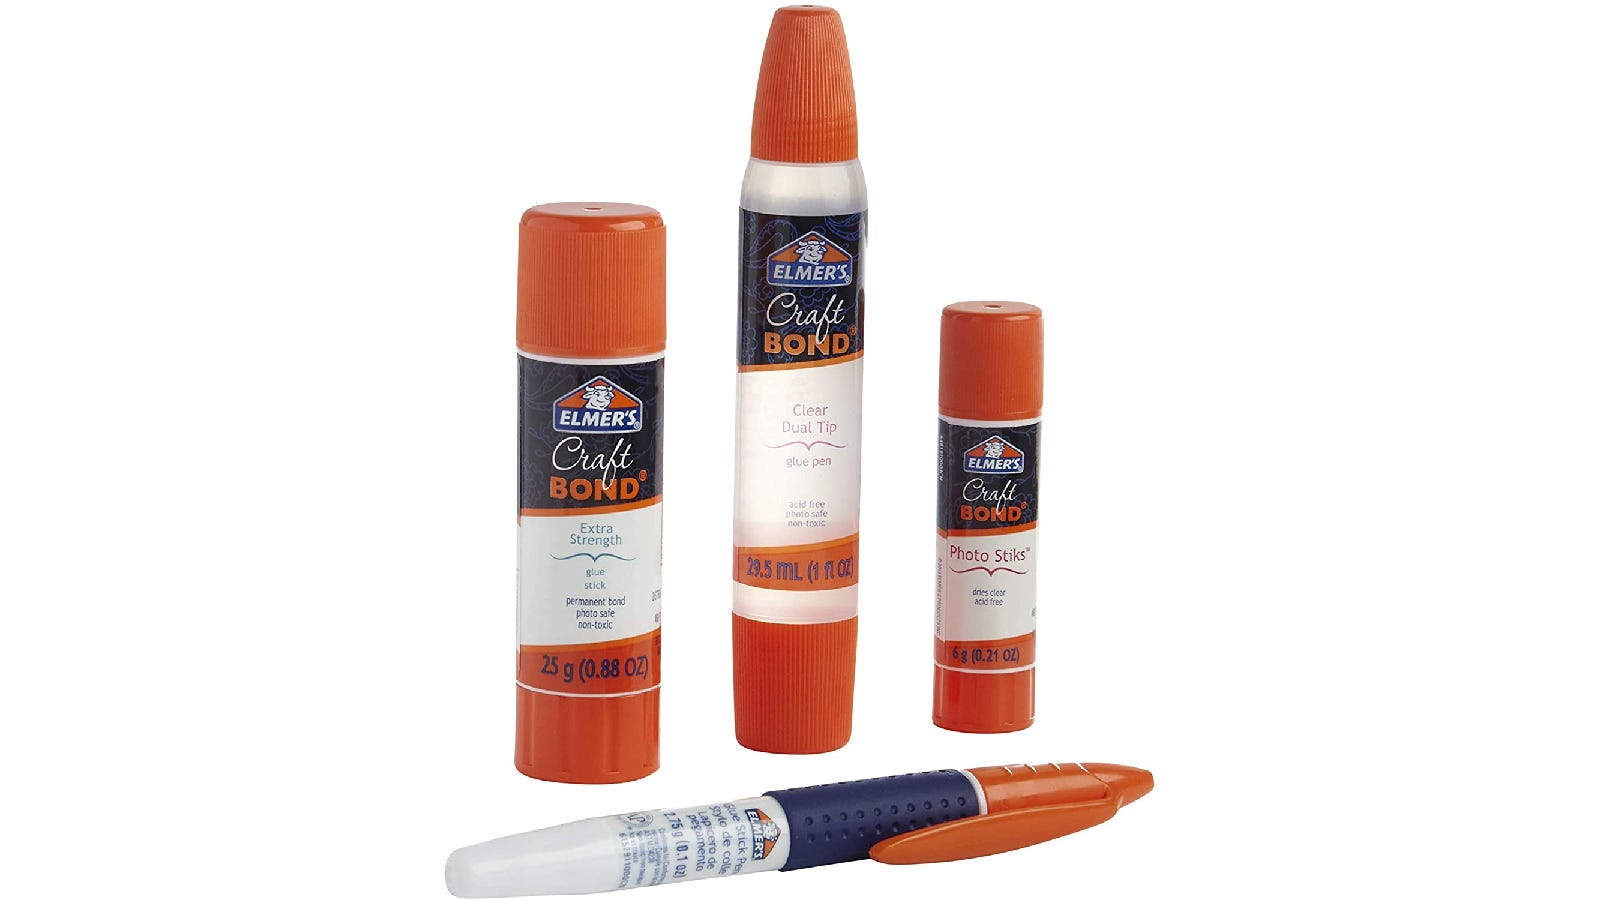 Four scrapbooking glue sticks with orange, black, and transparent packaging.